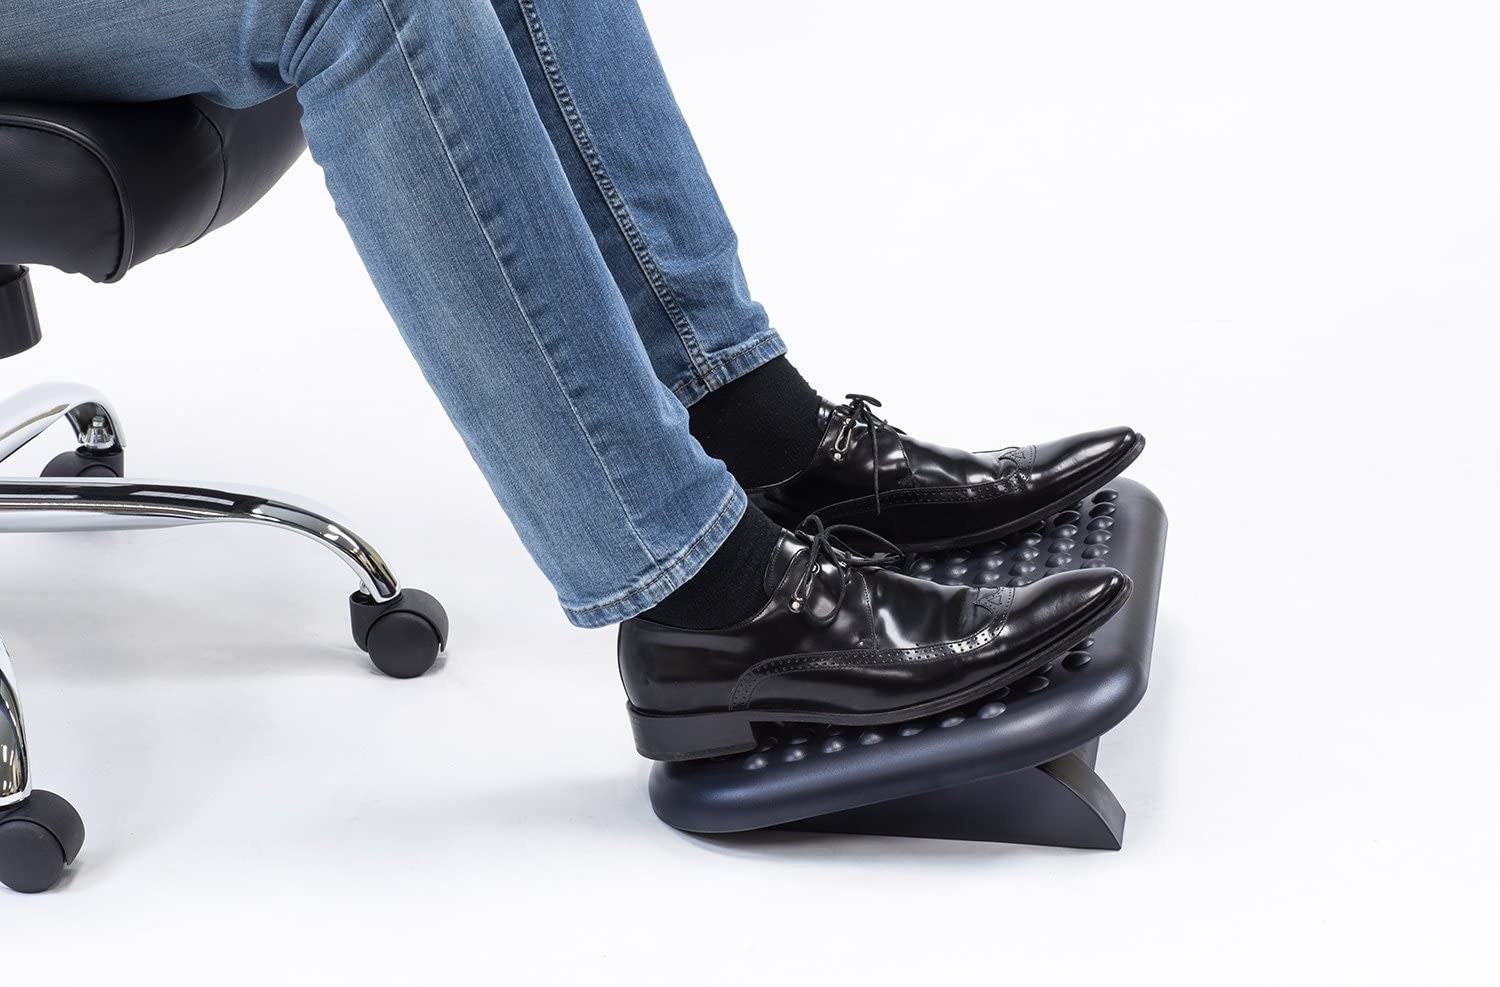 A person rest their feet on an angled foot rest with a bumpy surface